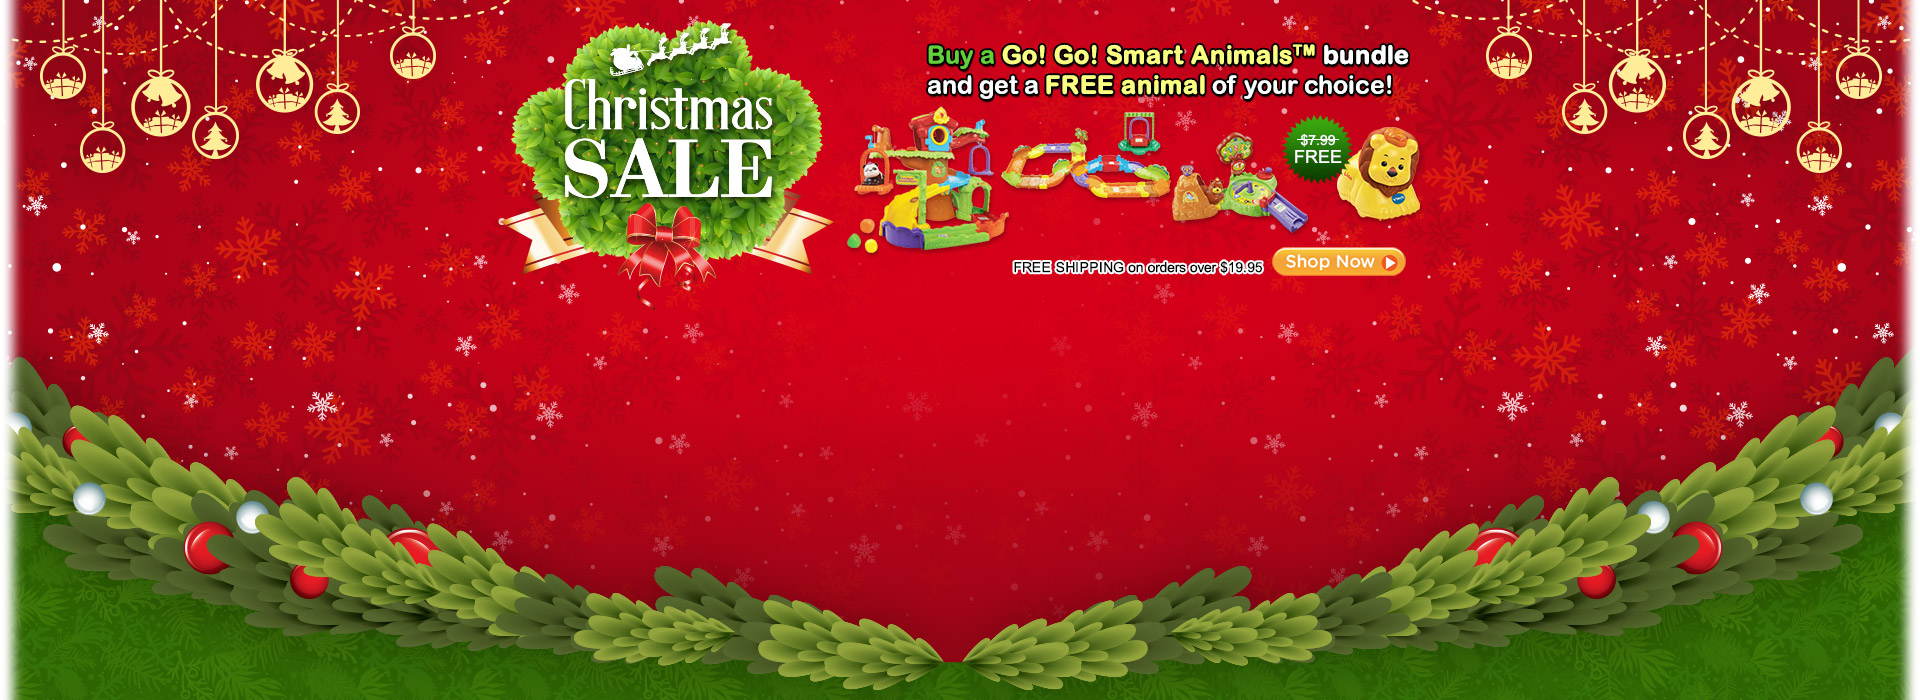 Christmas Sale - Buy a Go! Go! Smart Animals bundle and get a FREE animal of your choice!